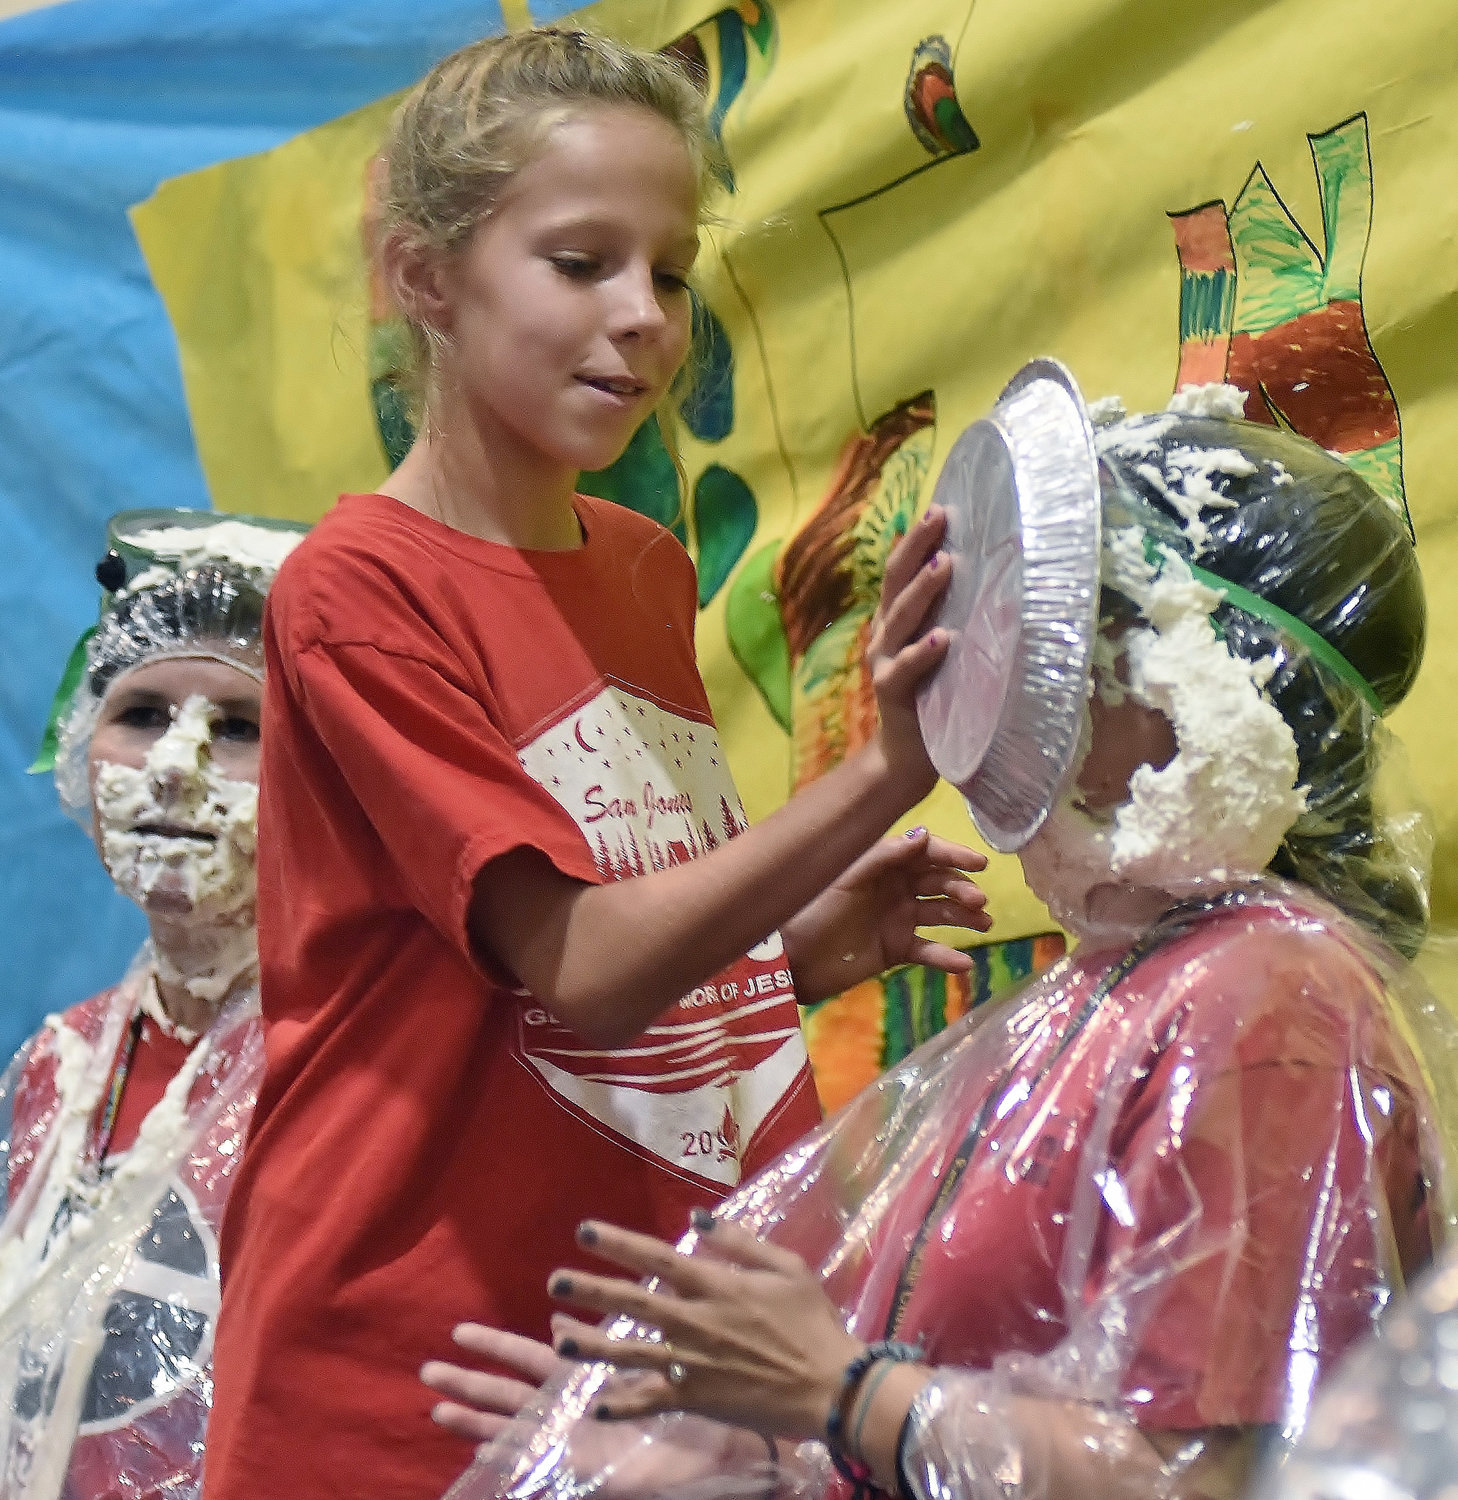 After Hamilton Crossing Elementary School teacher Jen Colston, left, took a pie to the face from a student, HCES fifth-grader Emma Brown gives teacher Erin Pickens a pie in the face.